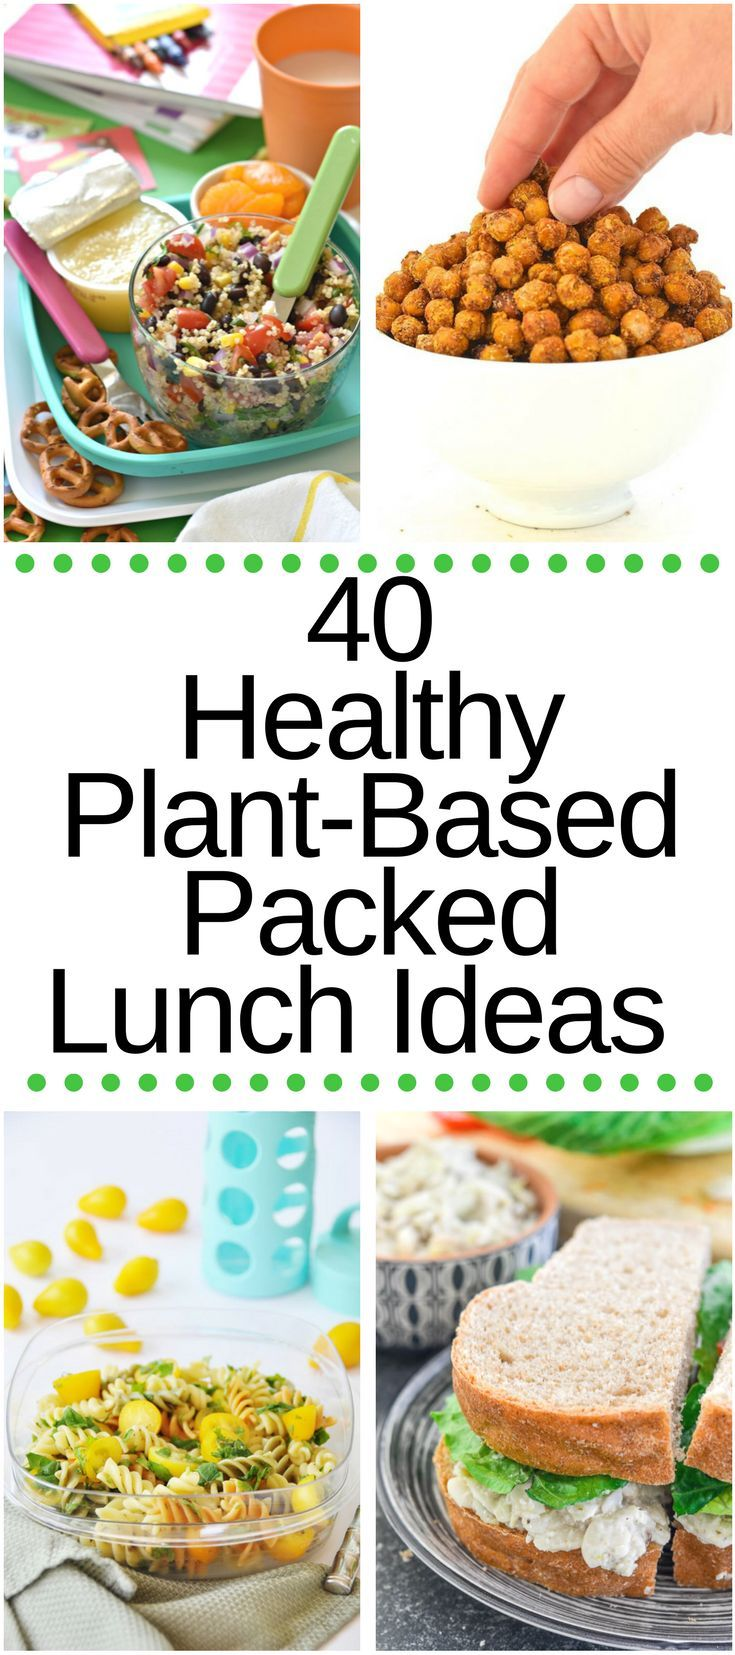 Click on the slideshow to view 40 Healthy Plant-Based Packed Lunch Ideas! Mel is the author, recipe creator, photographer and editor of the blog A Virtual Vegan.